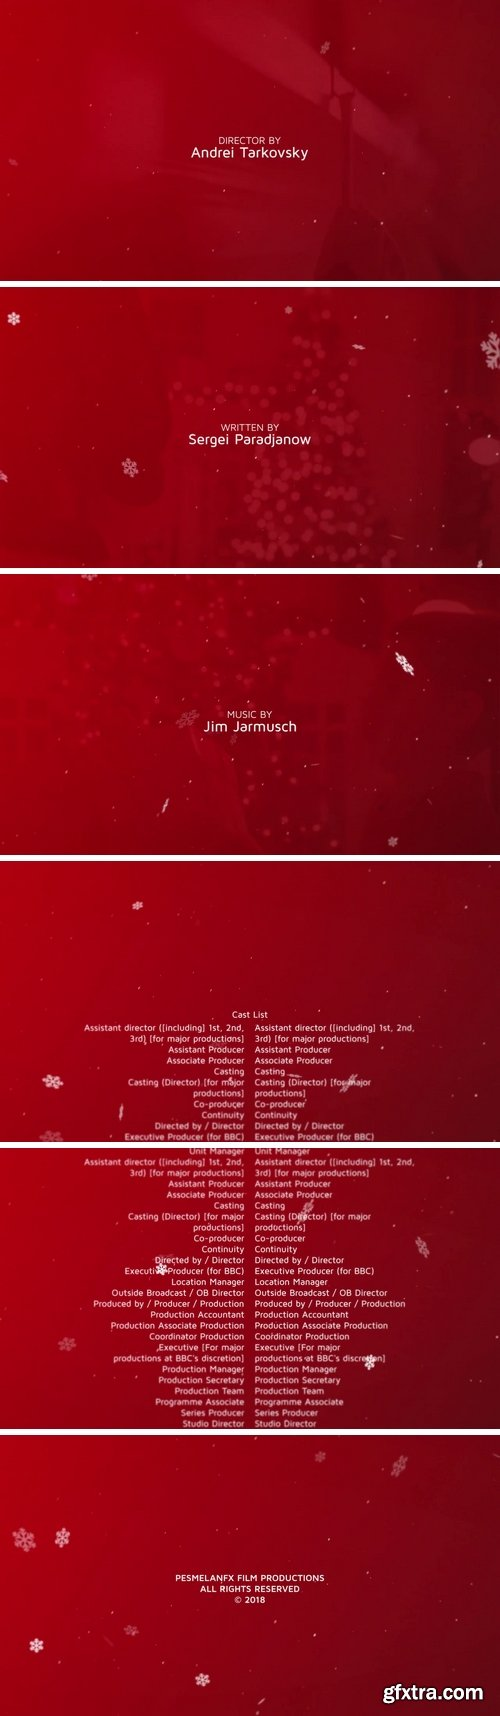 MA - Snow Film Credit After Effects Templates 152022